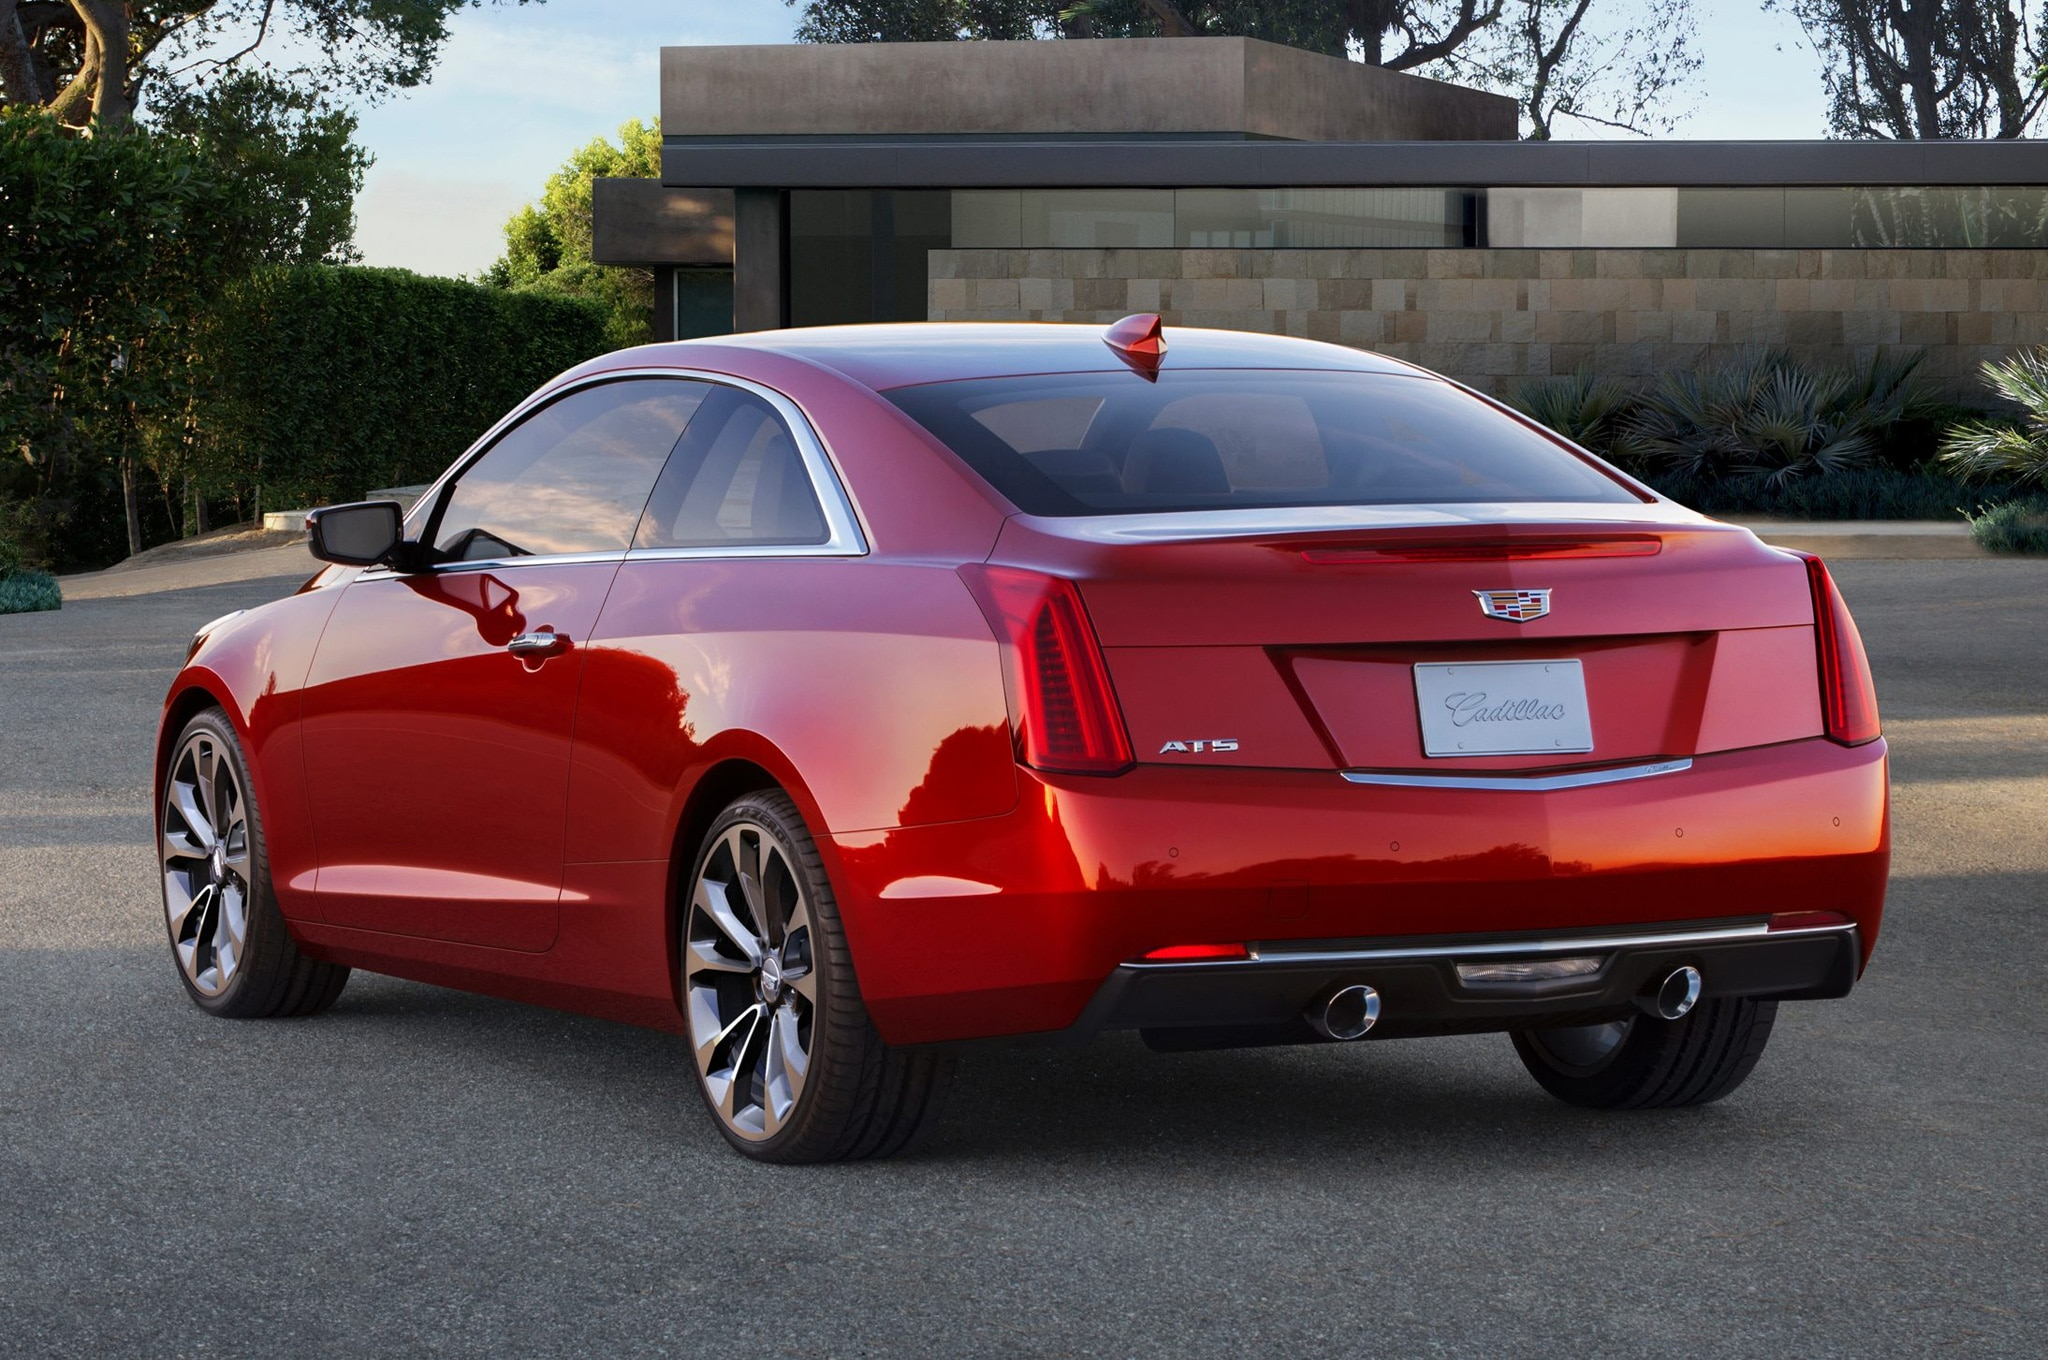 2015 cadillac ats coupe priced at 38 990. Black Bedroom Furniture Sets. Home Design Ideas